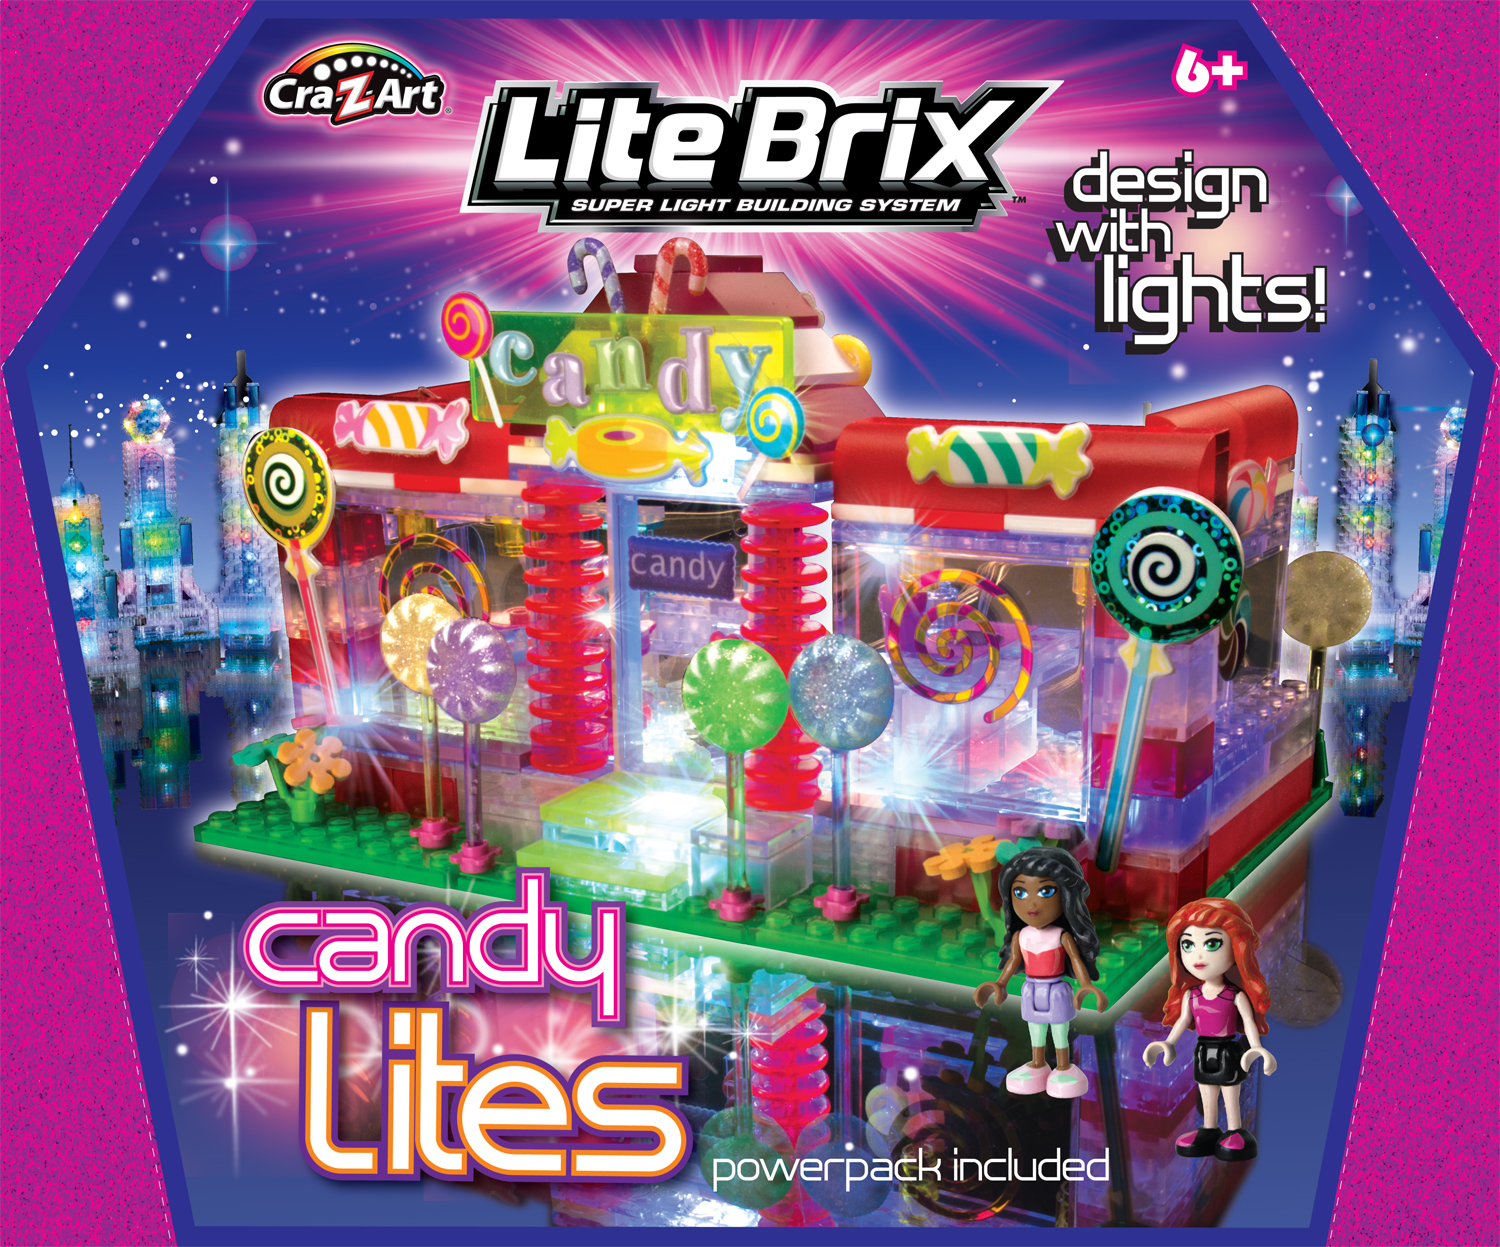 LIte Brix Candy Lites (store) targeted as part of the girls line from Cra-Z-art